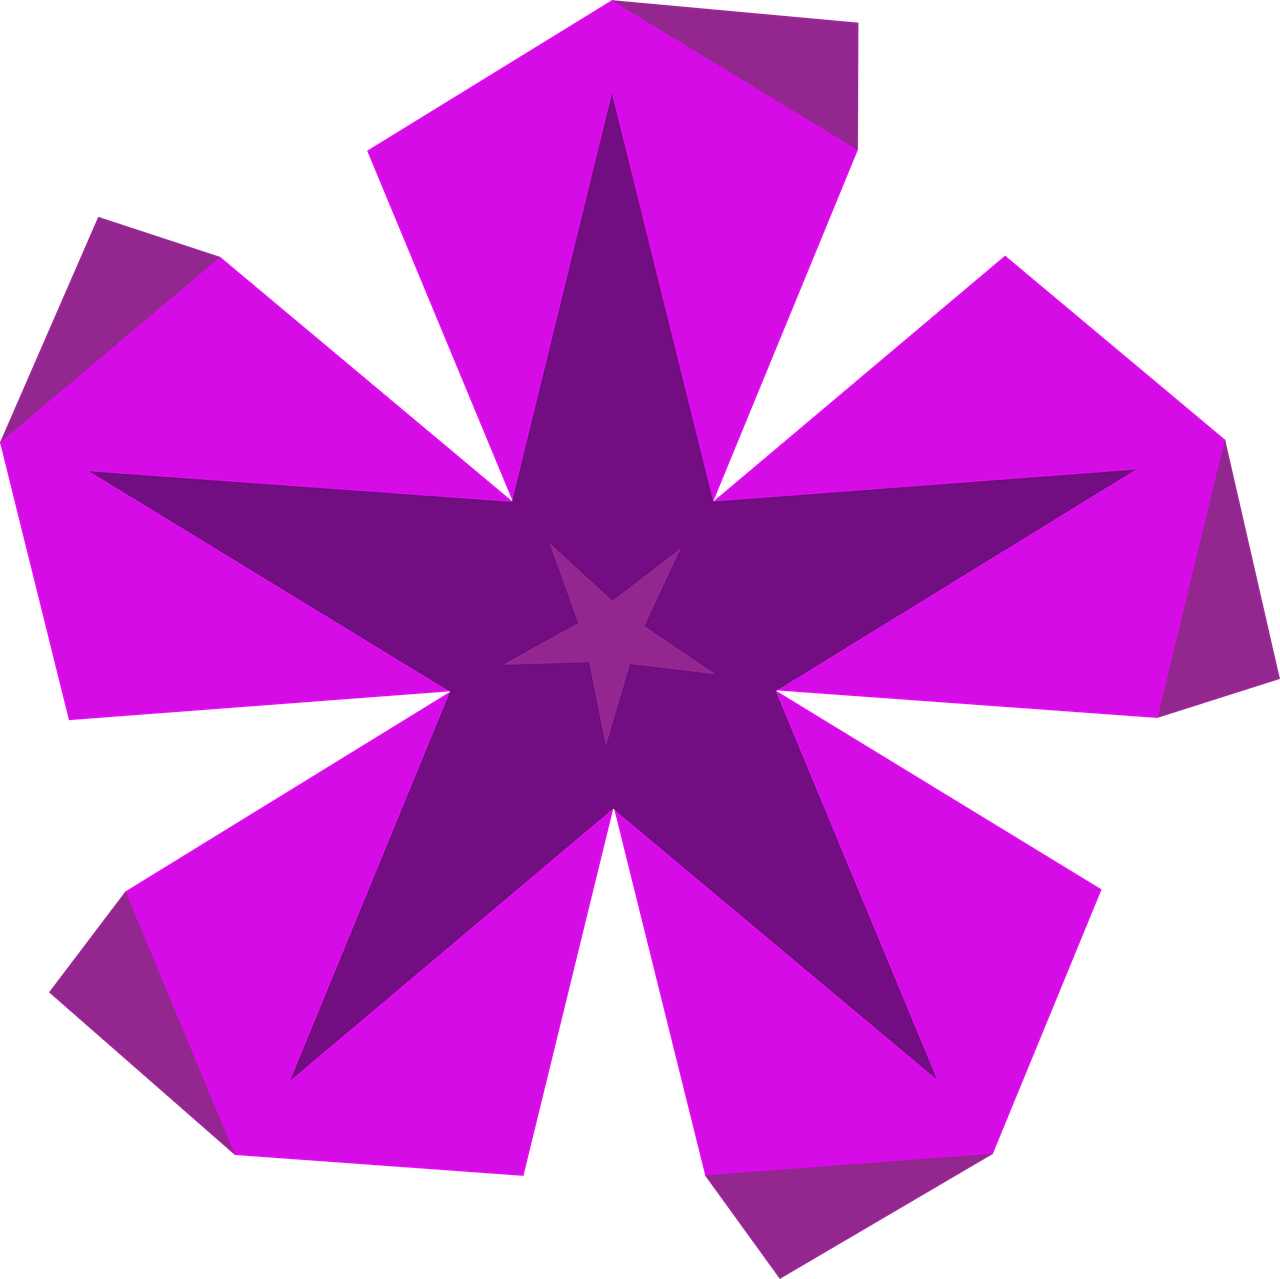 Clipart stars purple. Star transparent png stickpng